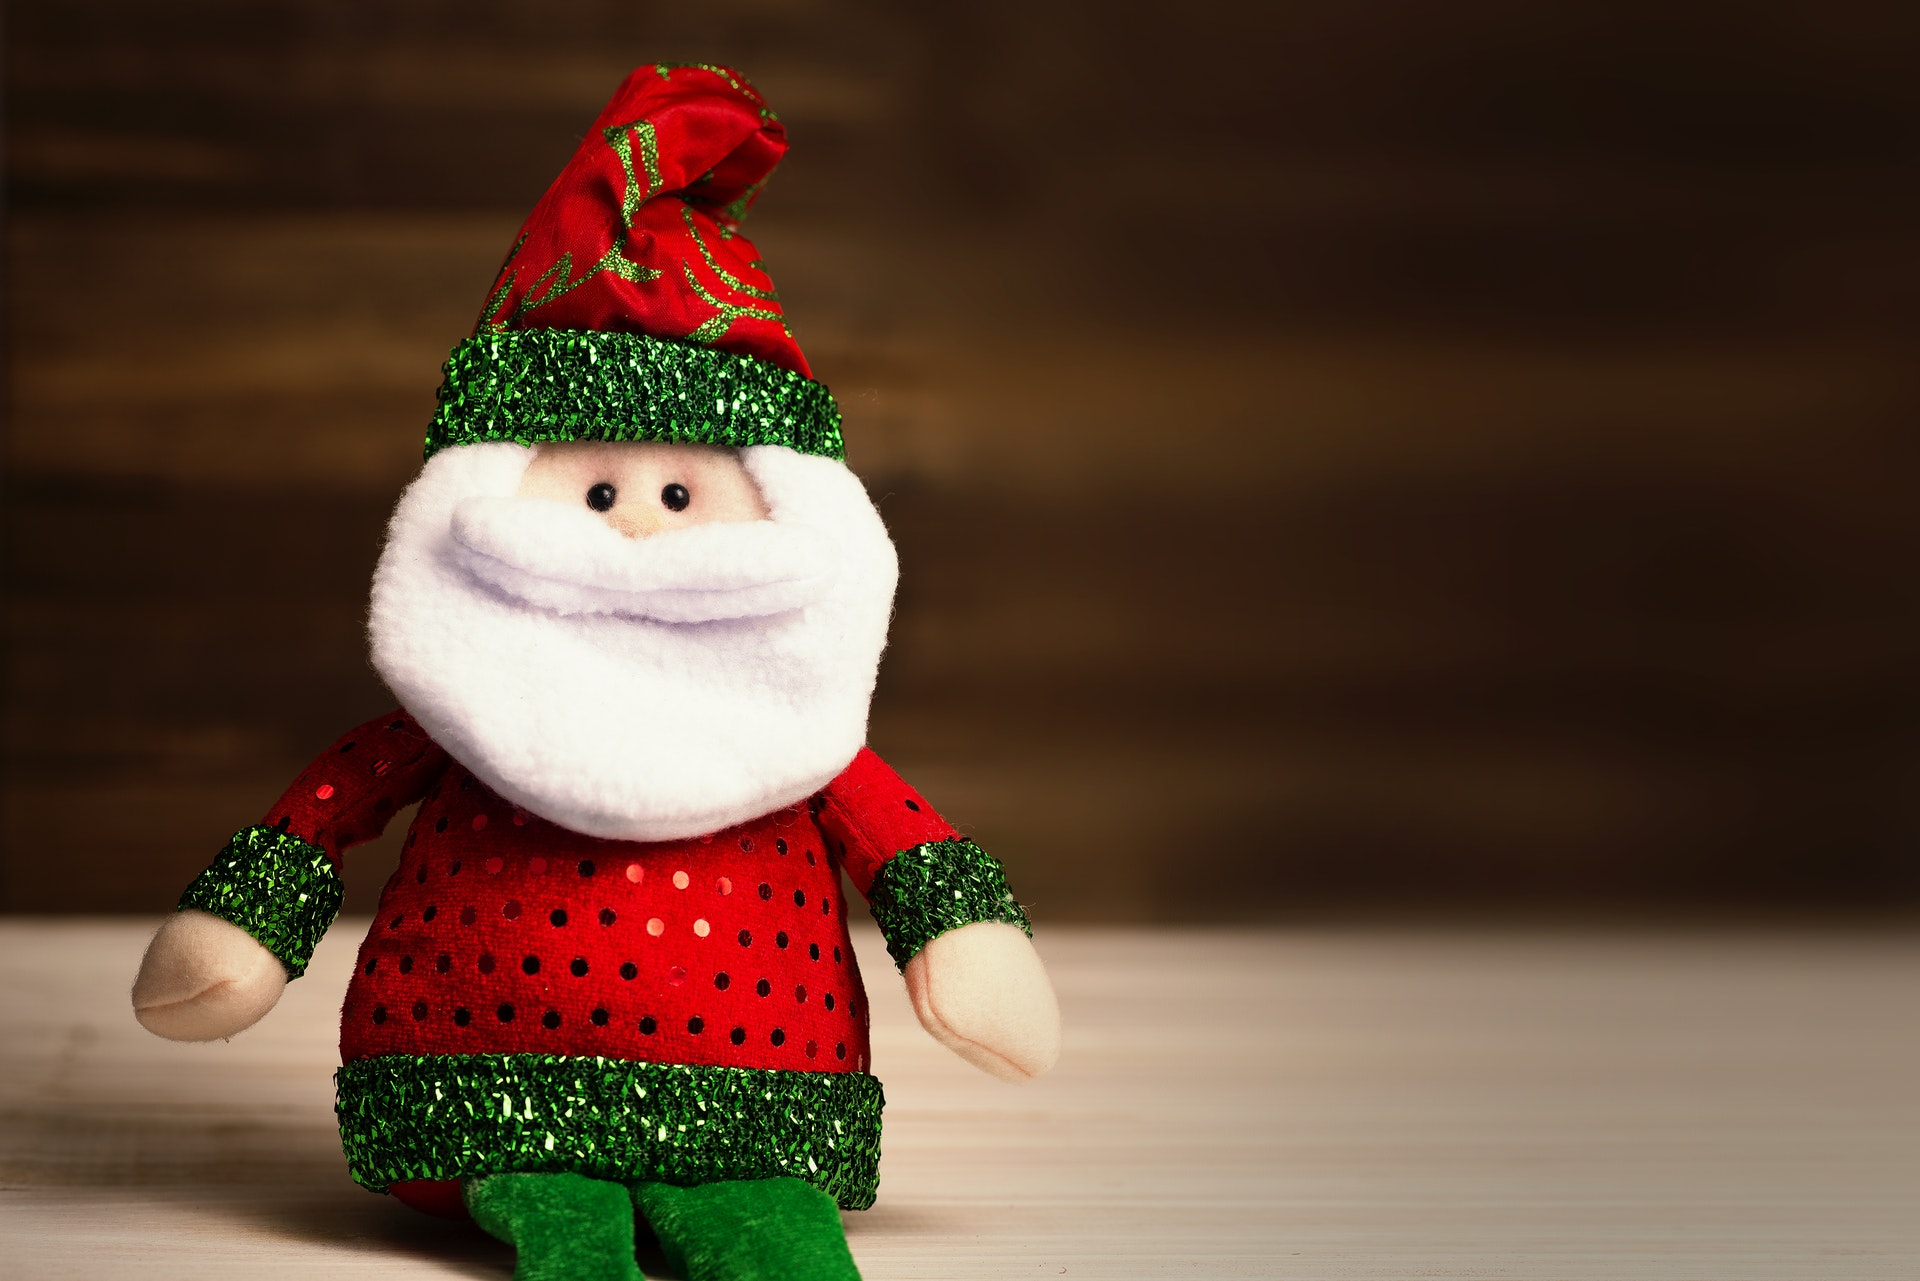 Image credit: https://www.pexels.com/photo/santa-claus-plush-toy-1556679/